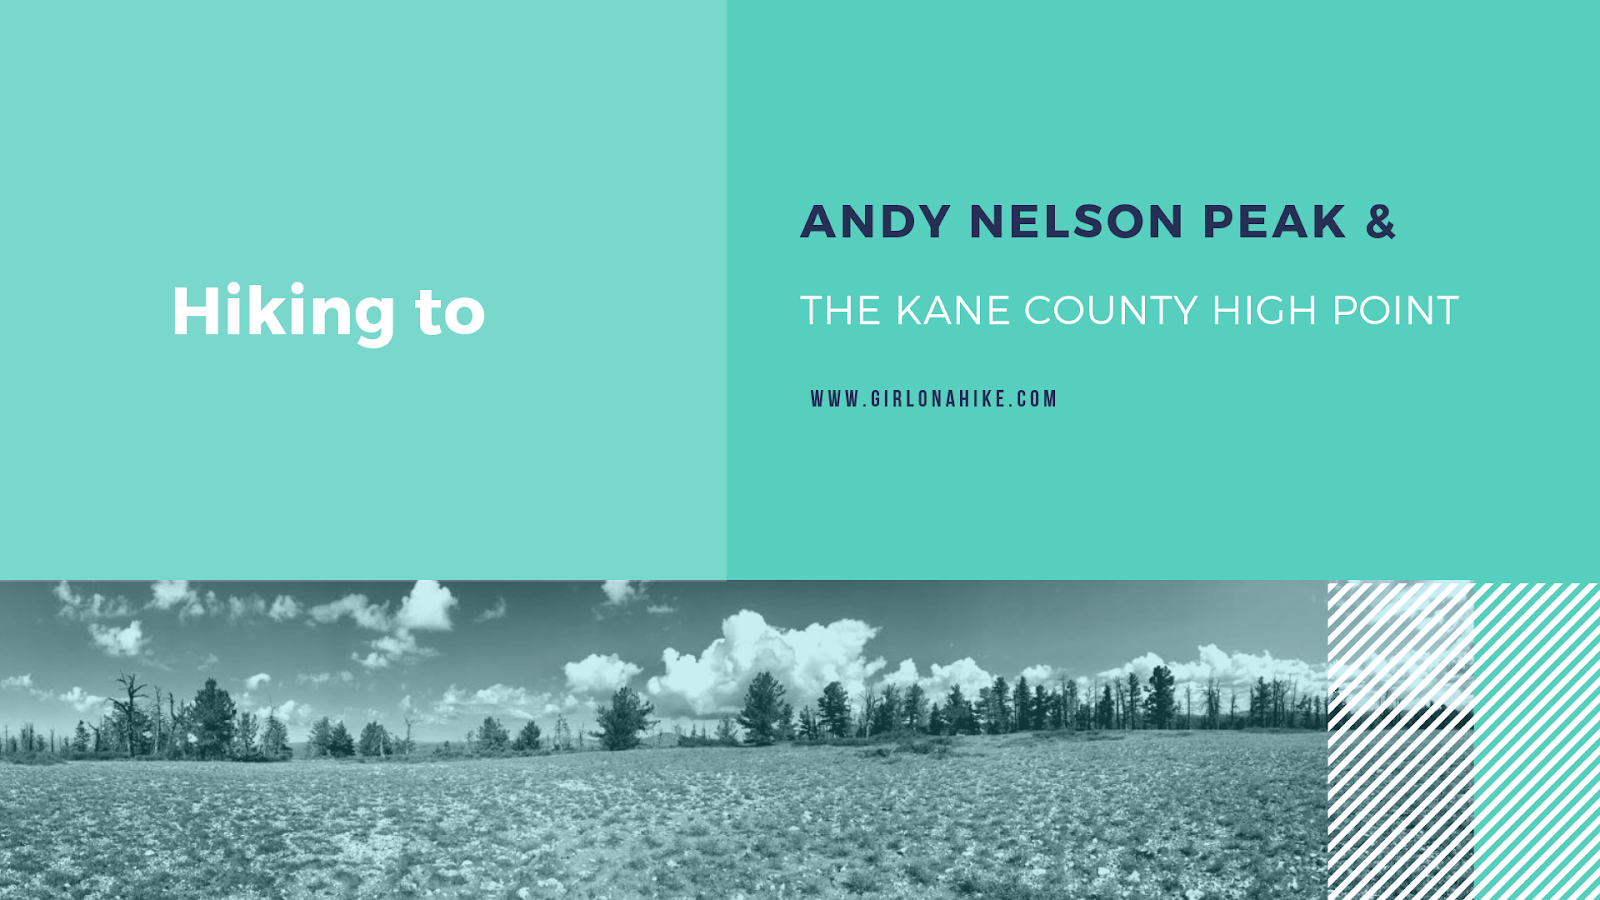 Hiking to Andy Nelson Peak & the Kane County High Point